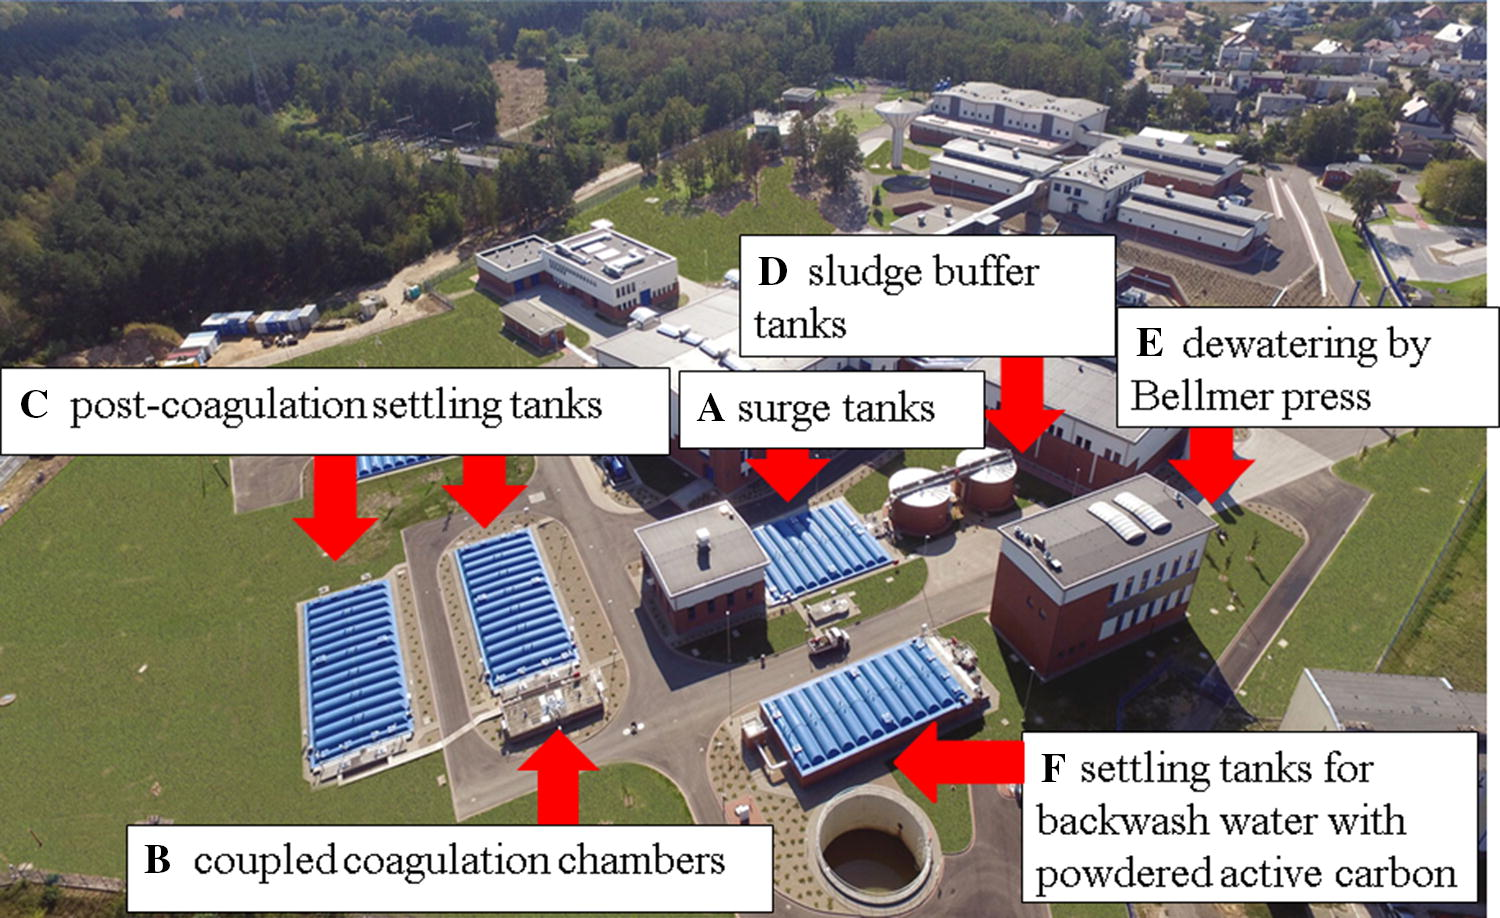 The properties of sludge formed as a result of coagulation